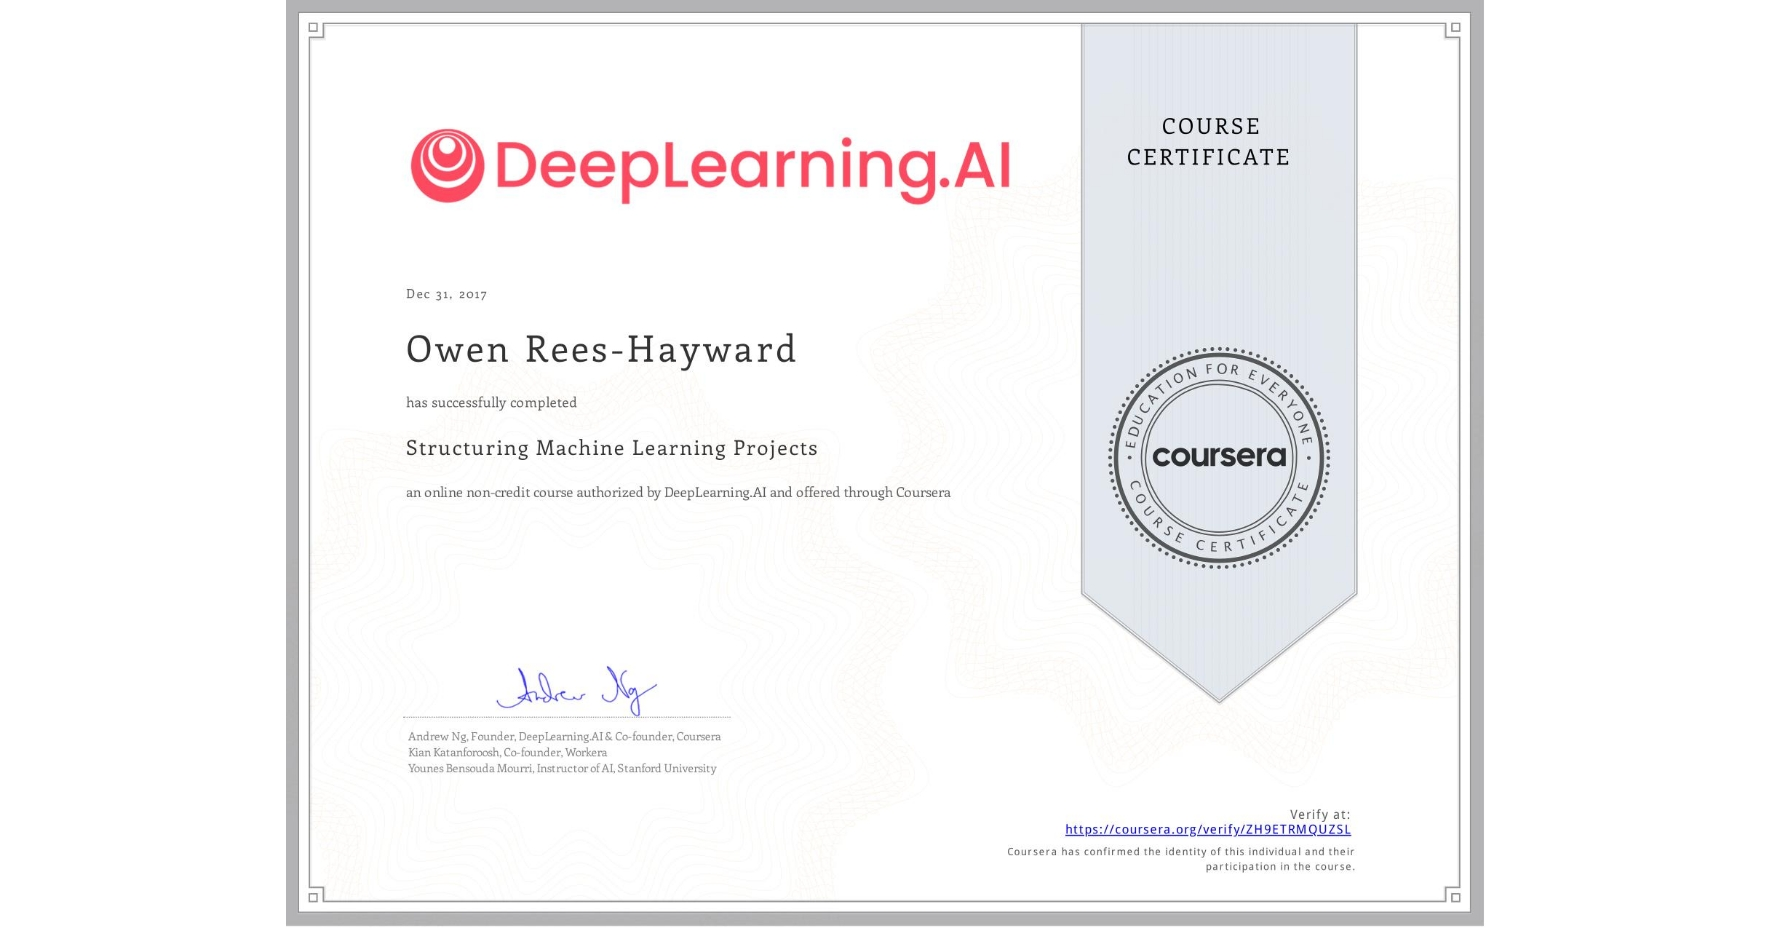 View certificate for Owen Rees-Hayward, Structuring Machine Learning Projects, an online non-credit course authorized by DeepLearning.AI and offered through Coursera